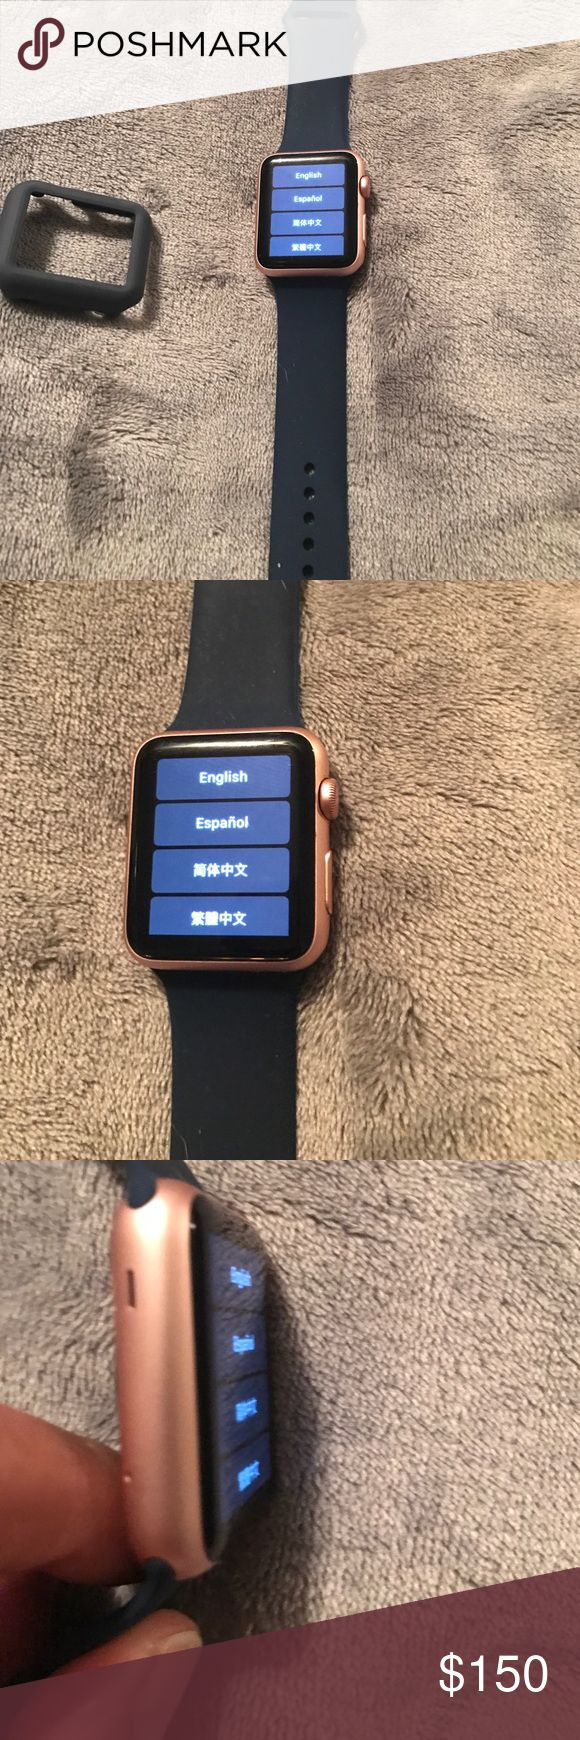 Apple Sport Watch The watch is in great shape! Works perfectly and this is the 42mm in rose gold with a navy band. Apple Watch Accessories Watches